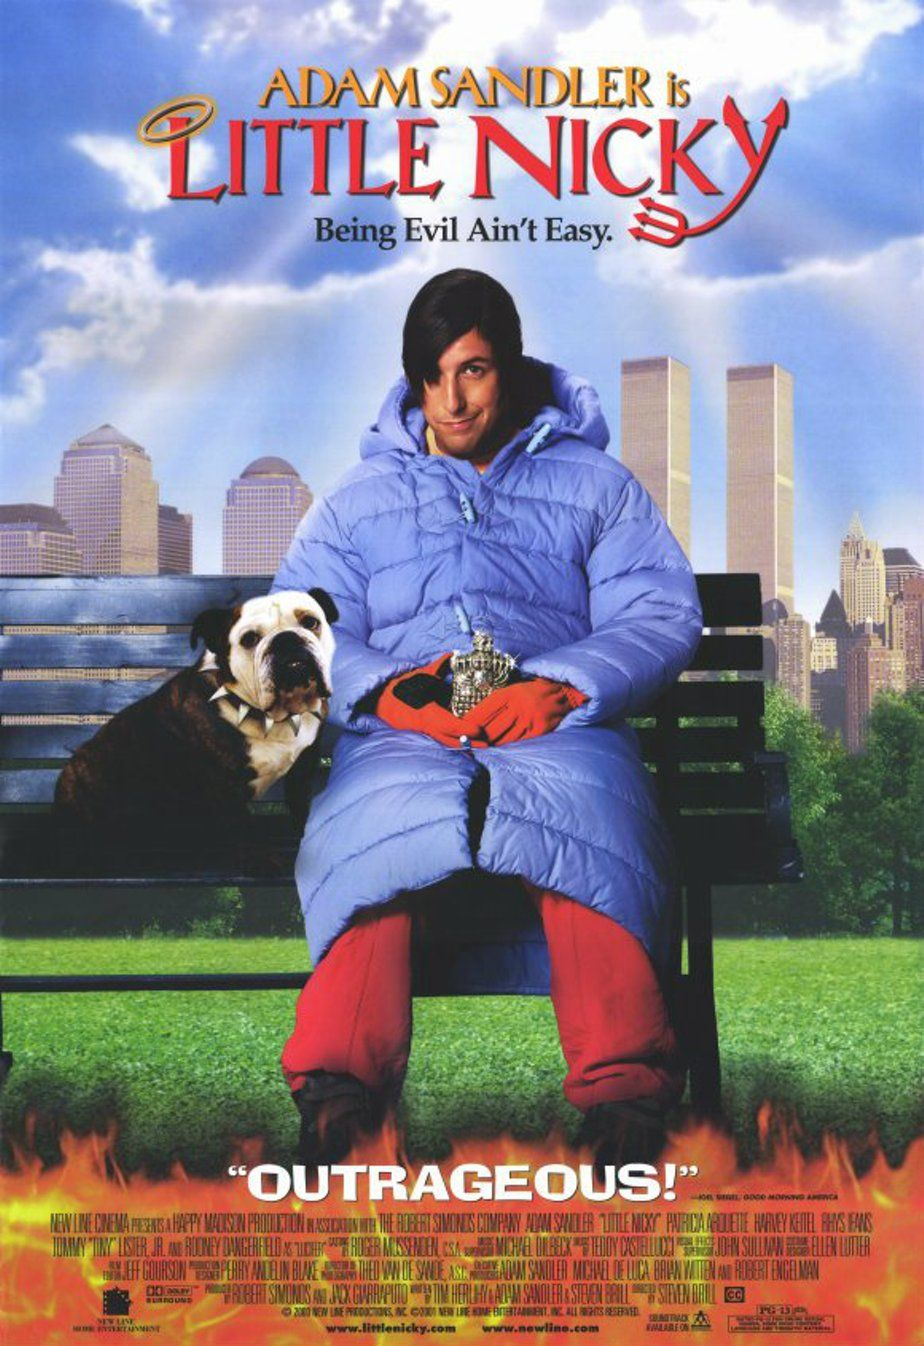 3111 Little Nicky (2000) 720p WEBRip Adam Sandler | Funny ...